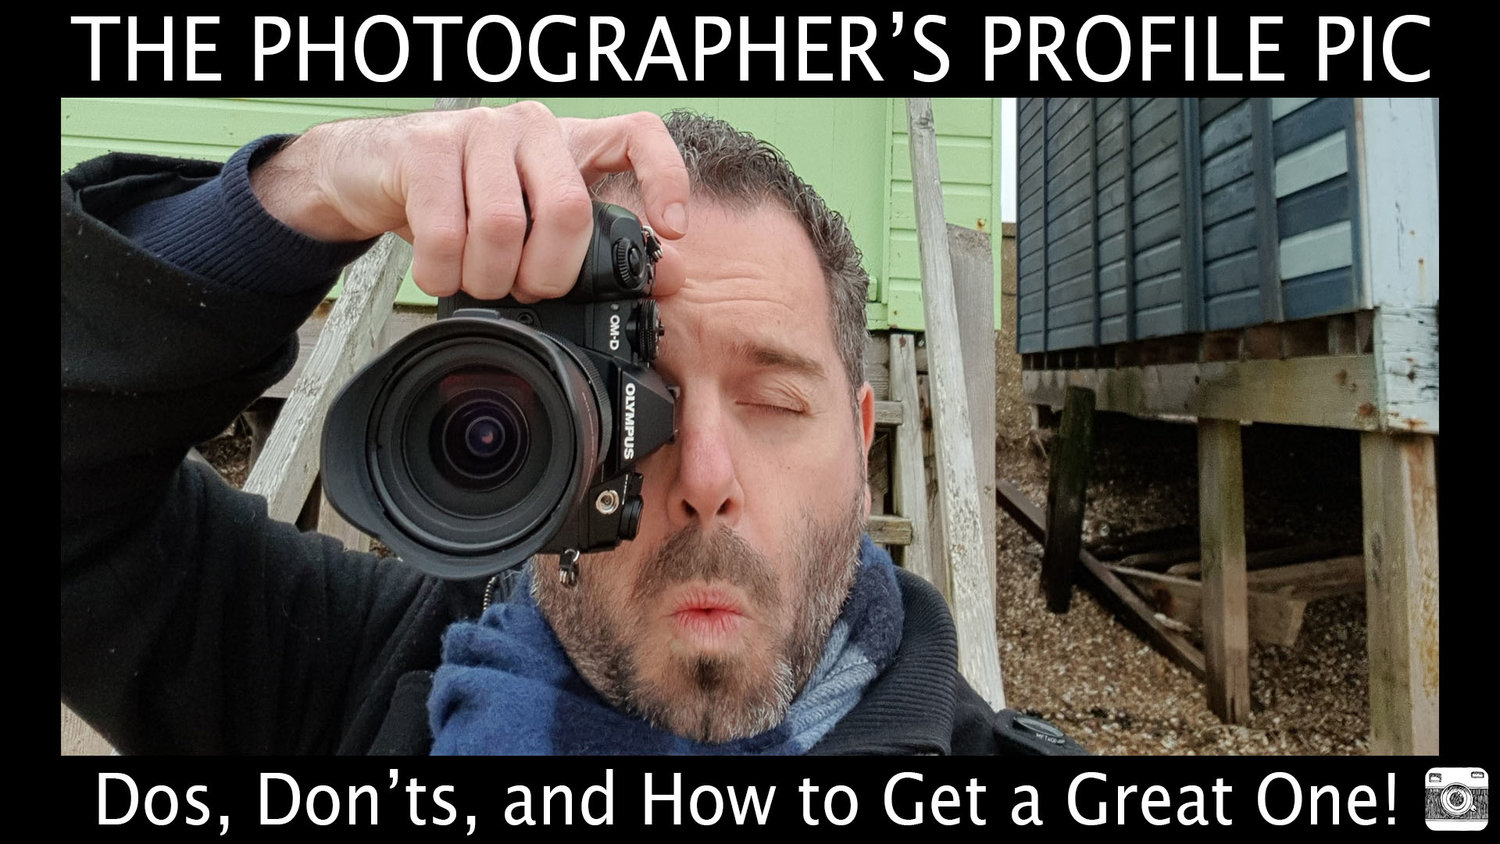 The Photographer's Profile Pic – Dos, Don'ts, and How to Get a Great One!